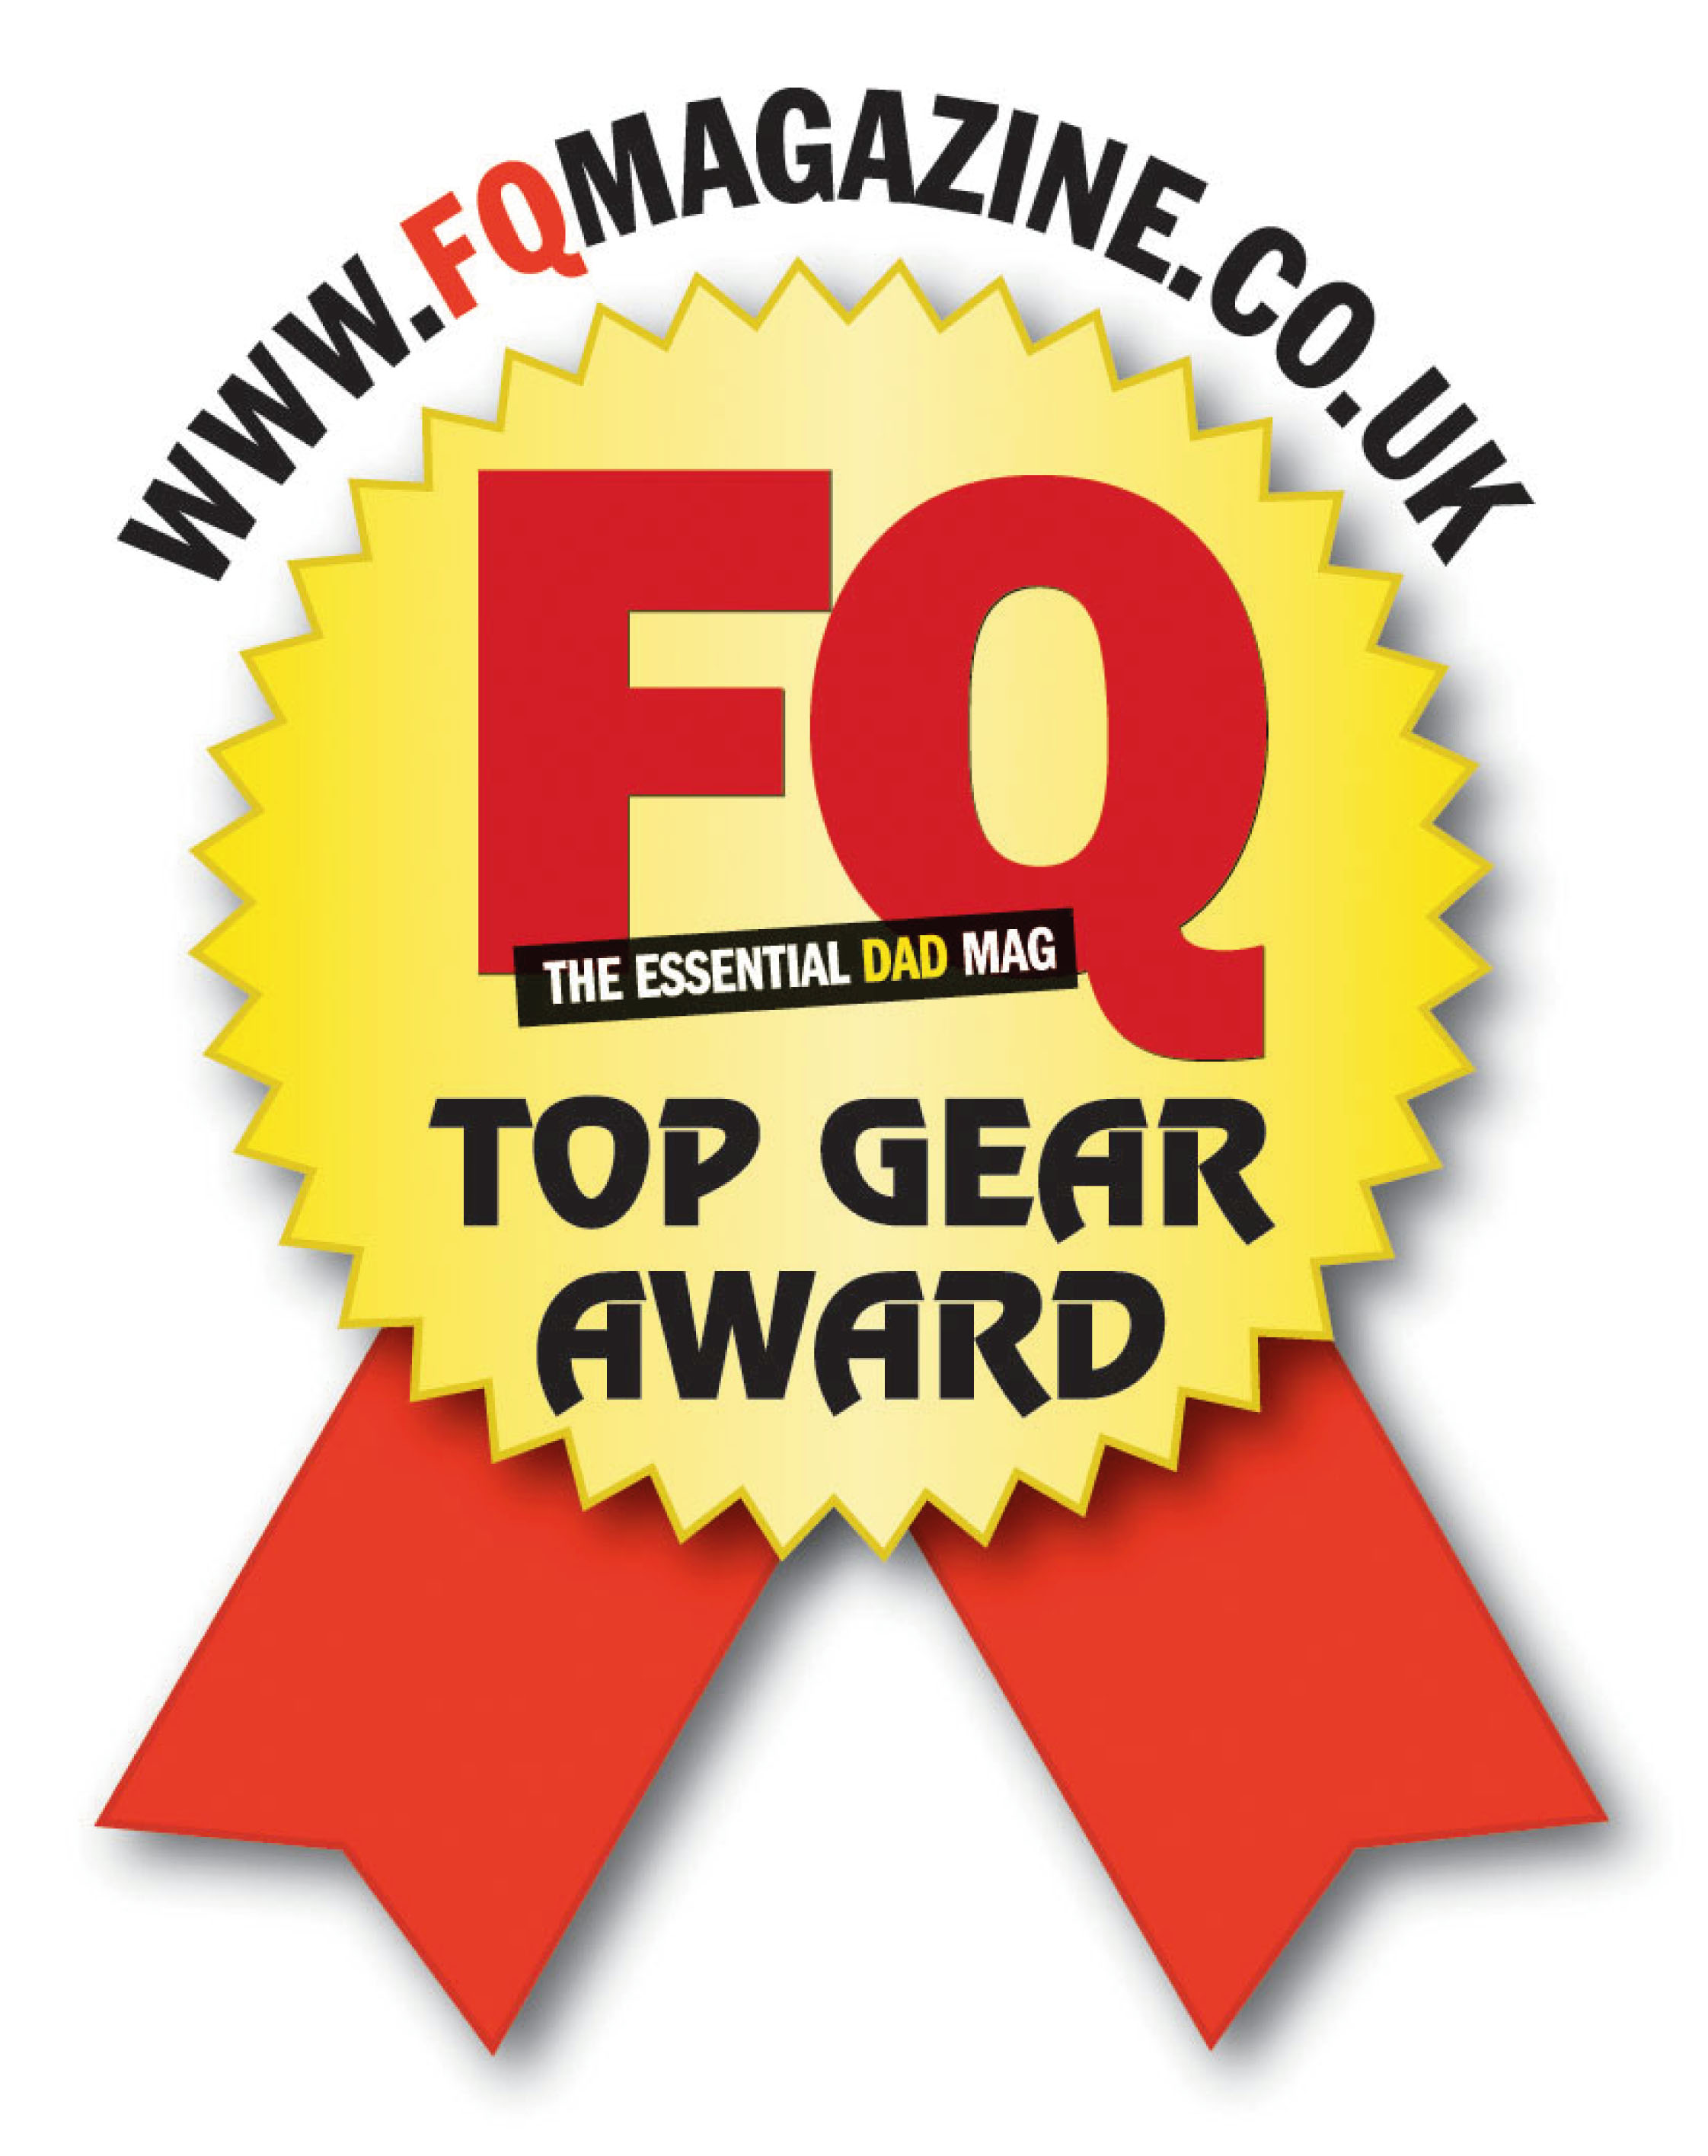 Top Gear award